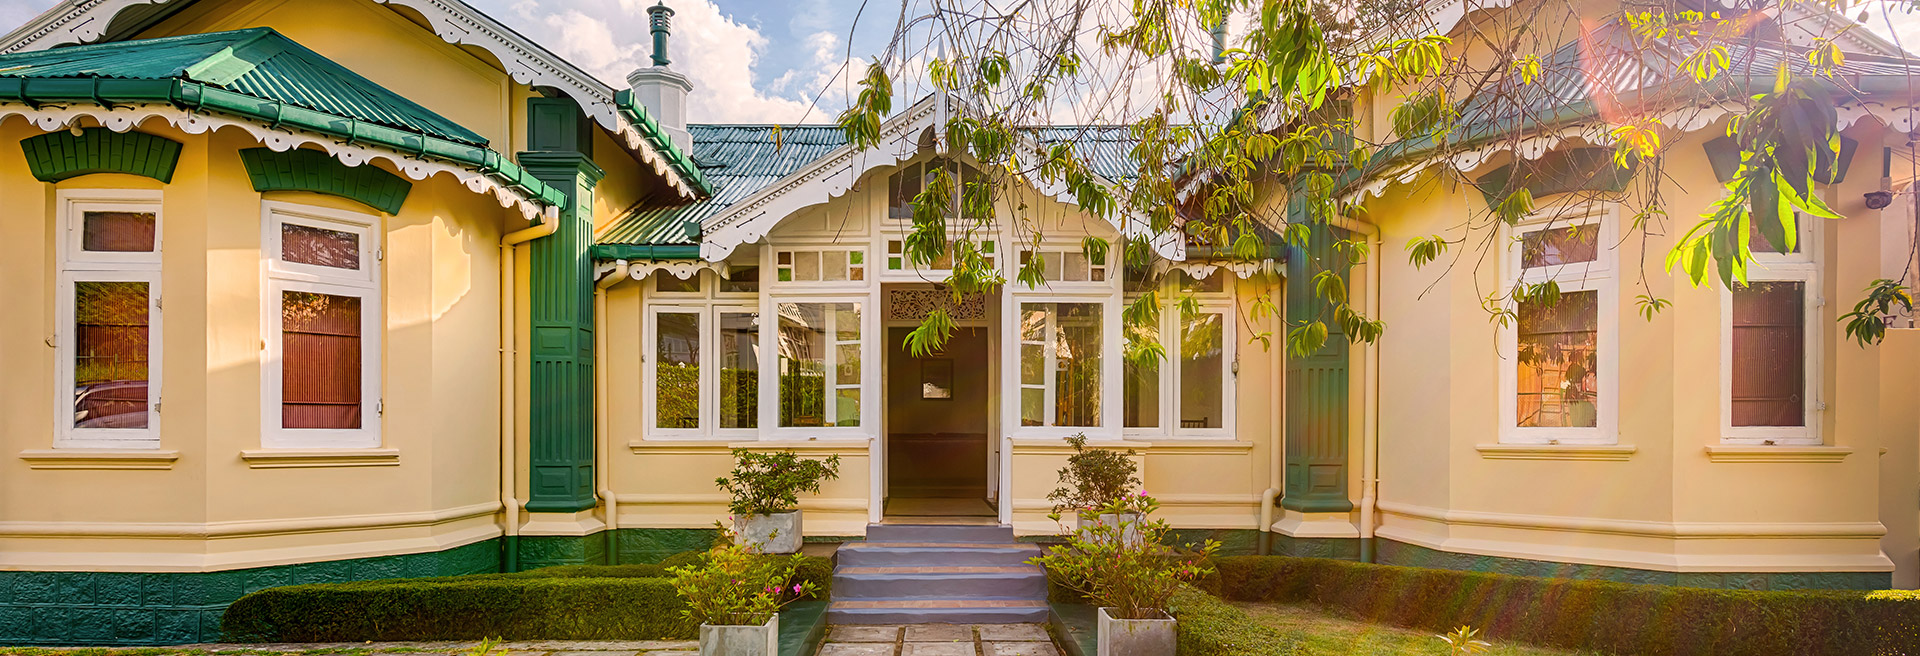 Exterior view of The Cottage by Jetwing